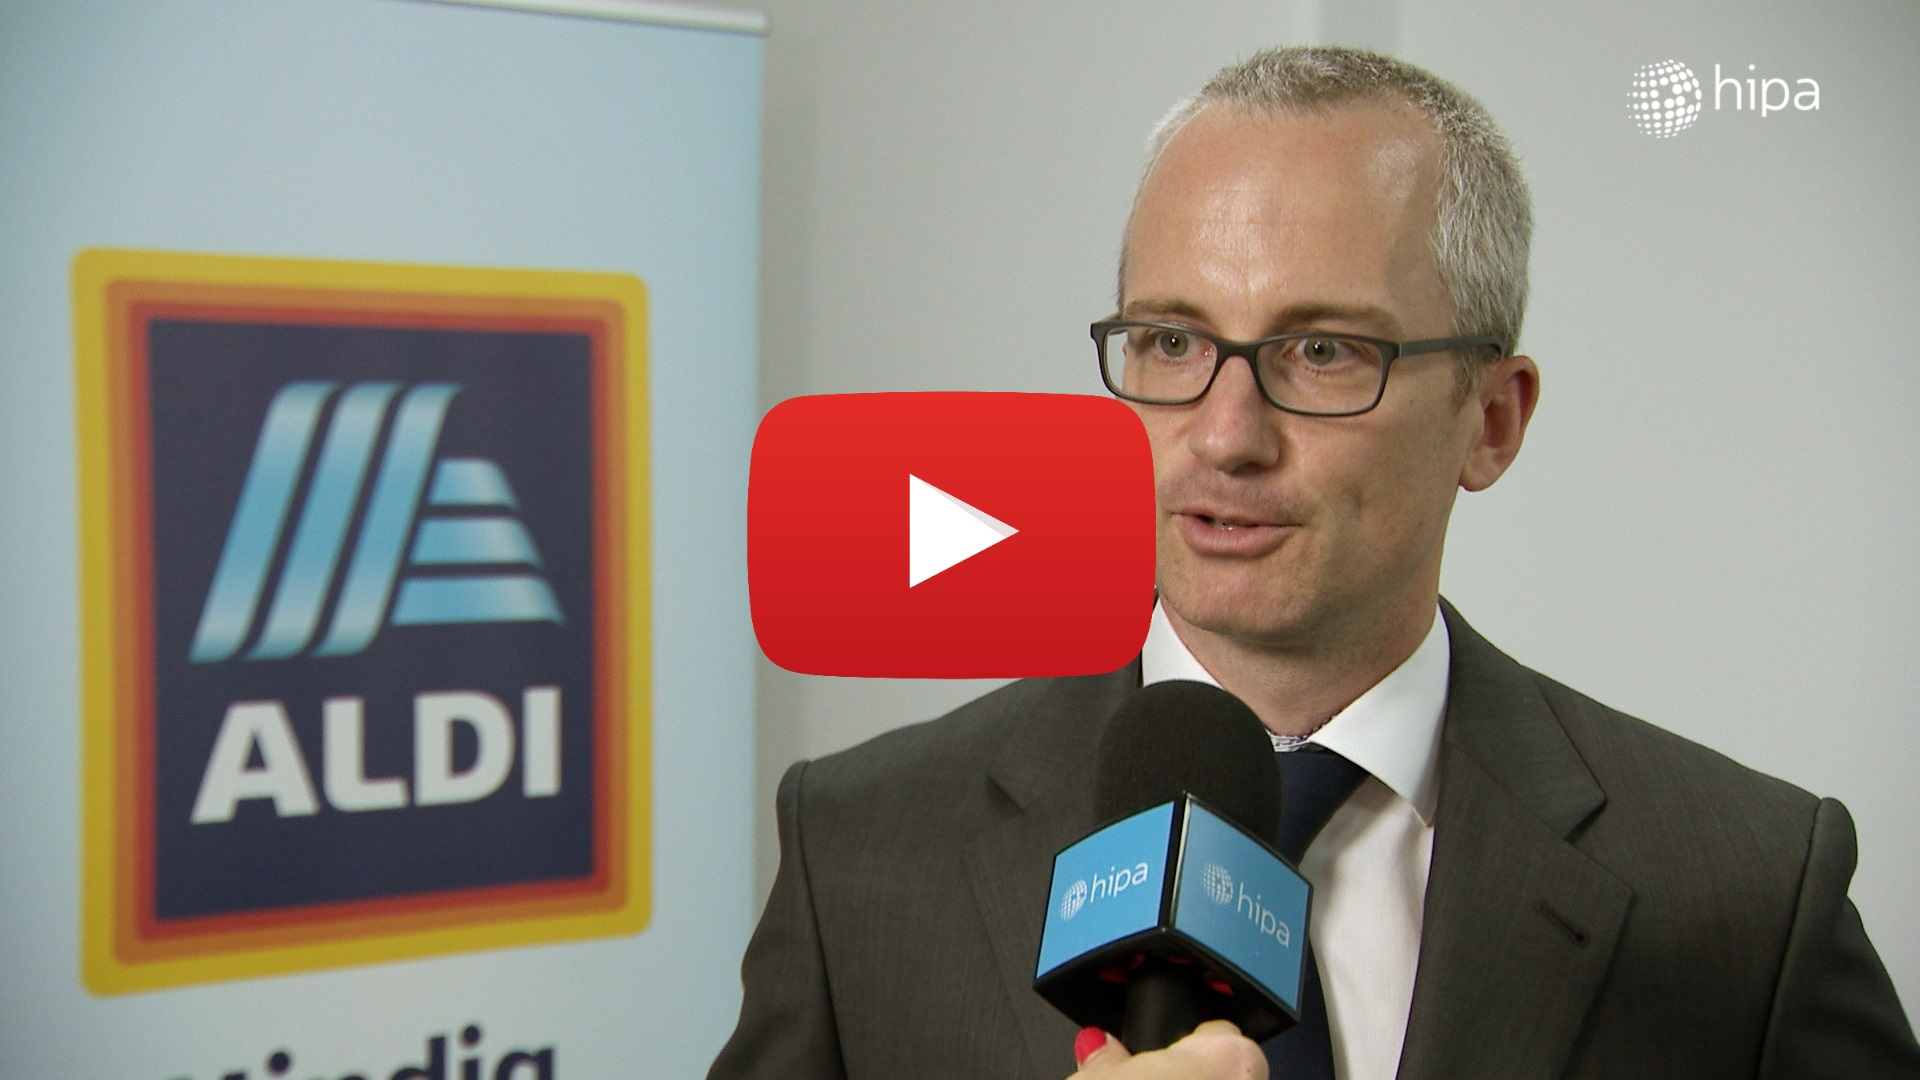 ALDI coordinates the substantial part of its European IT network from Pécs - VIDEO REPORT